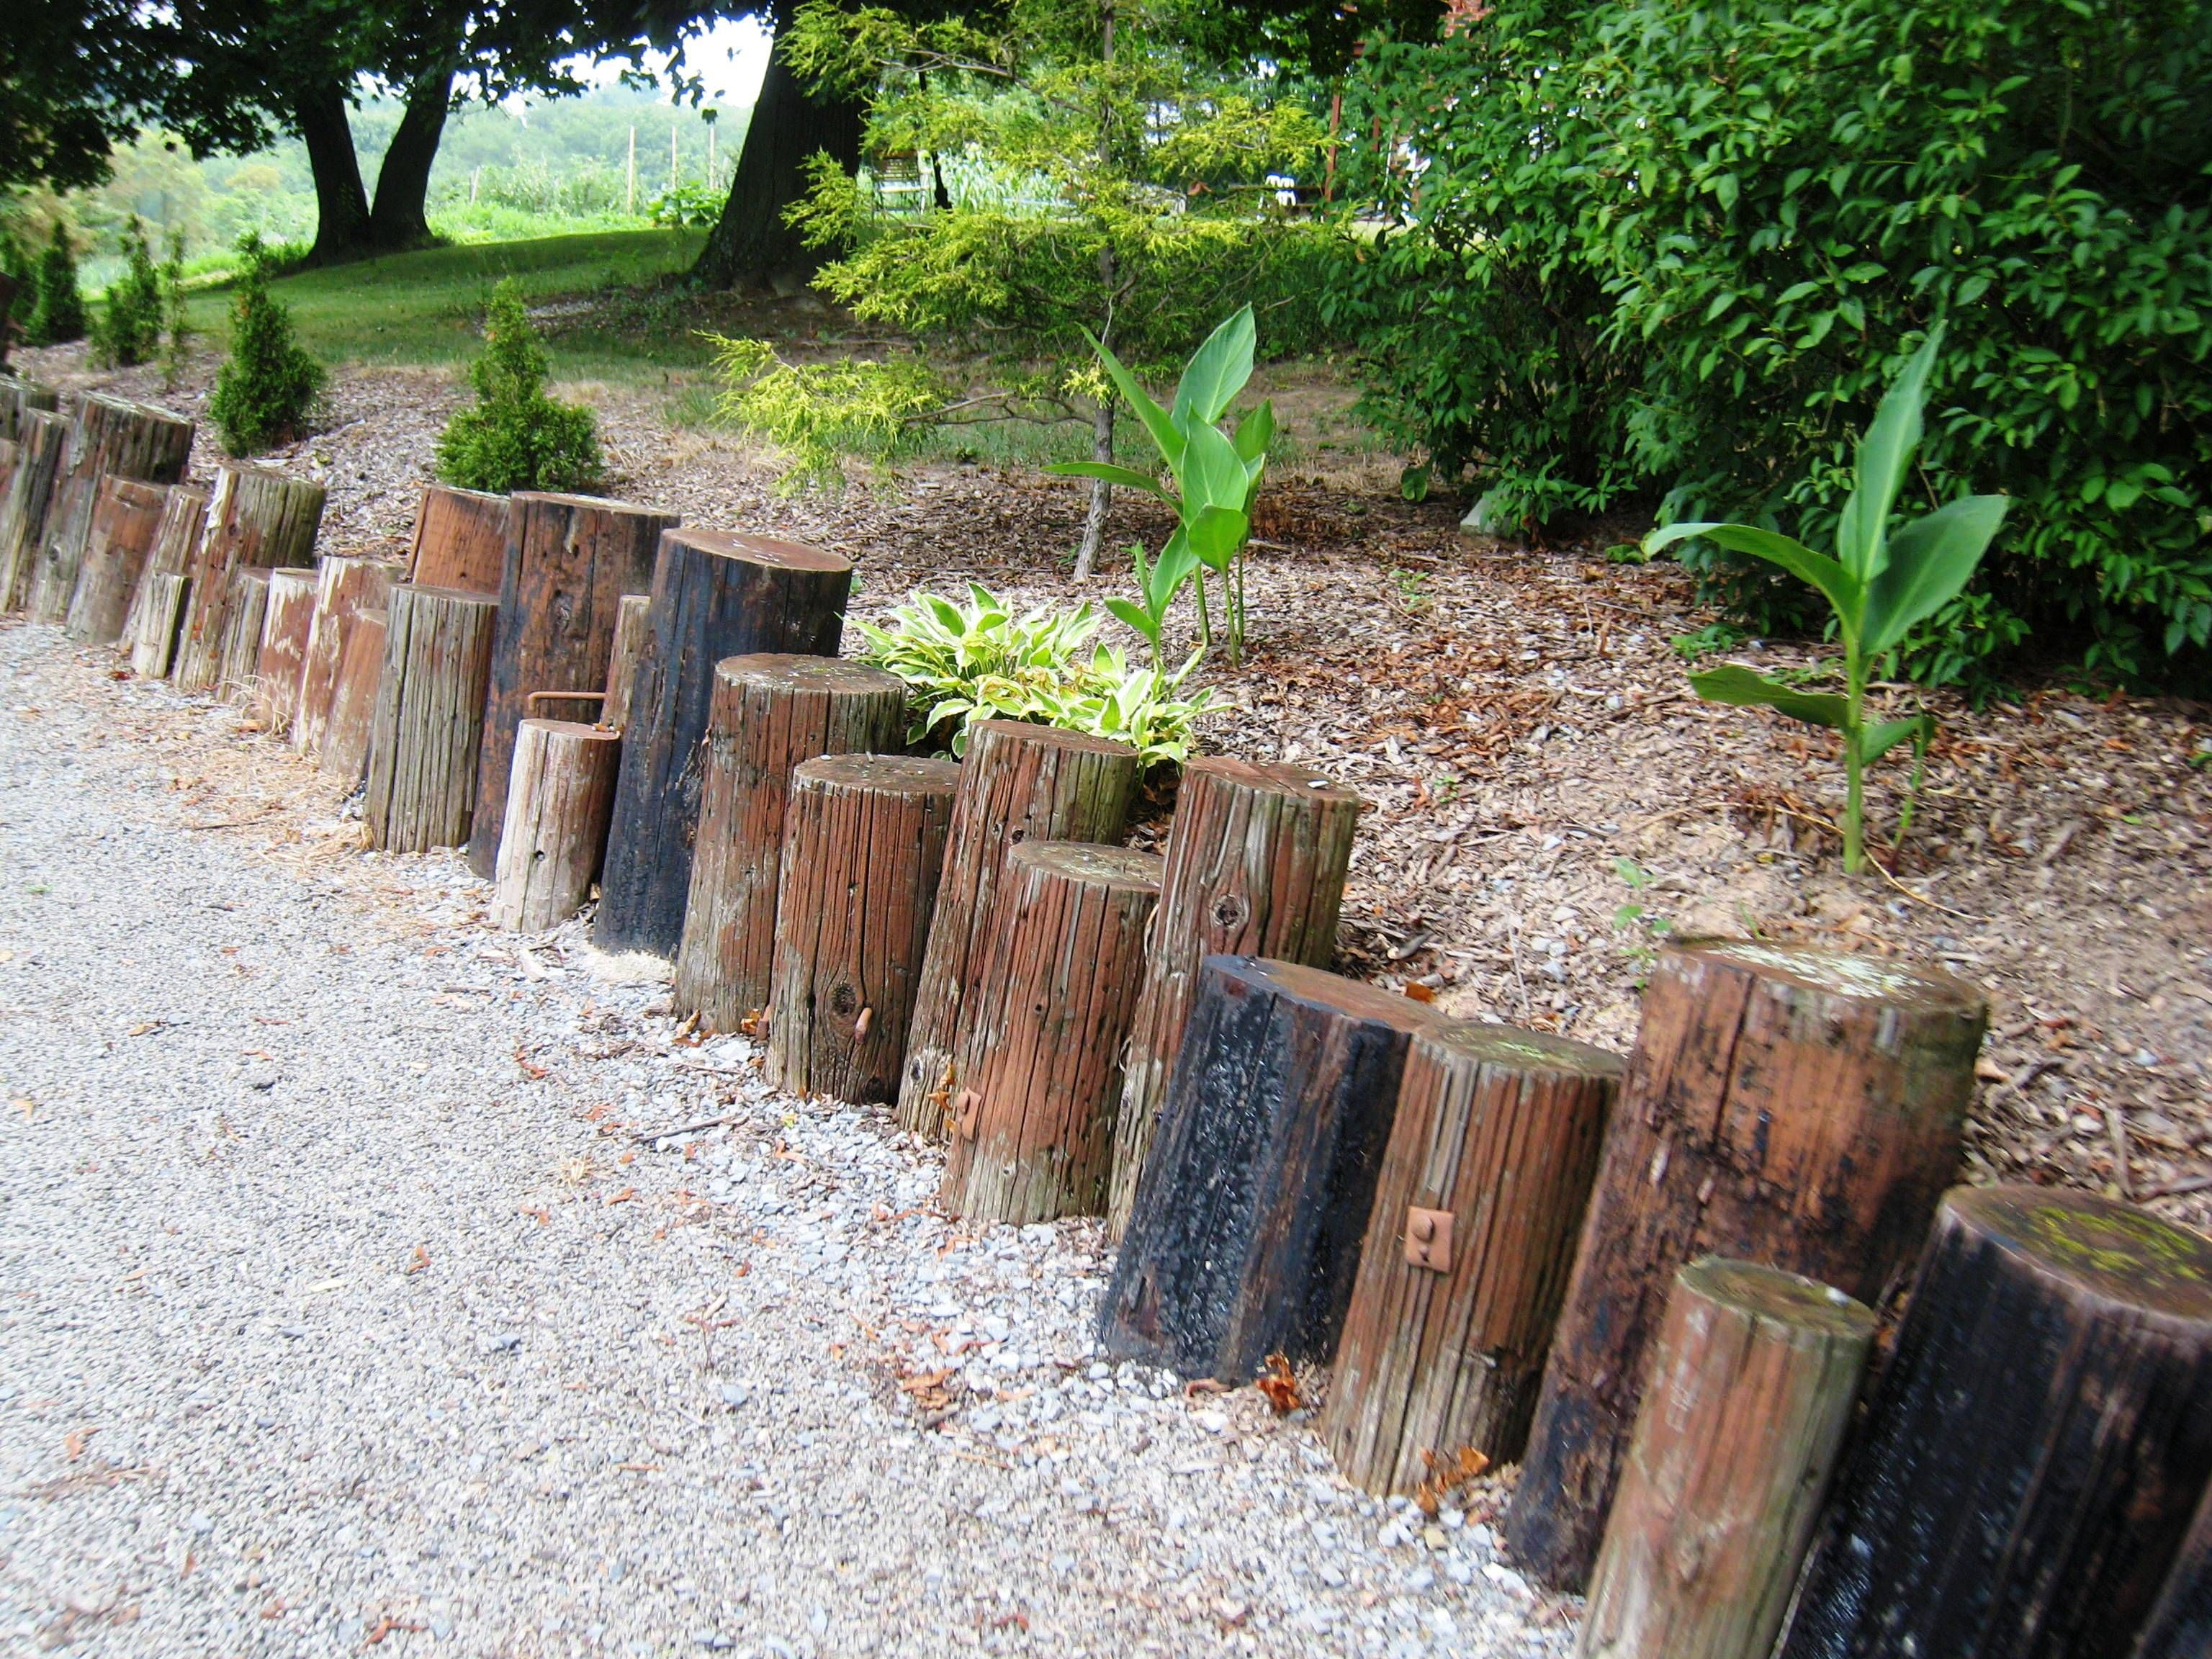 Virtually Indestructible Railroad Ties Make An Interesting Border